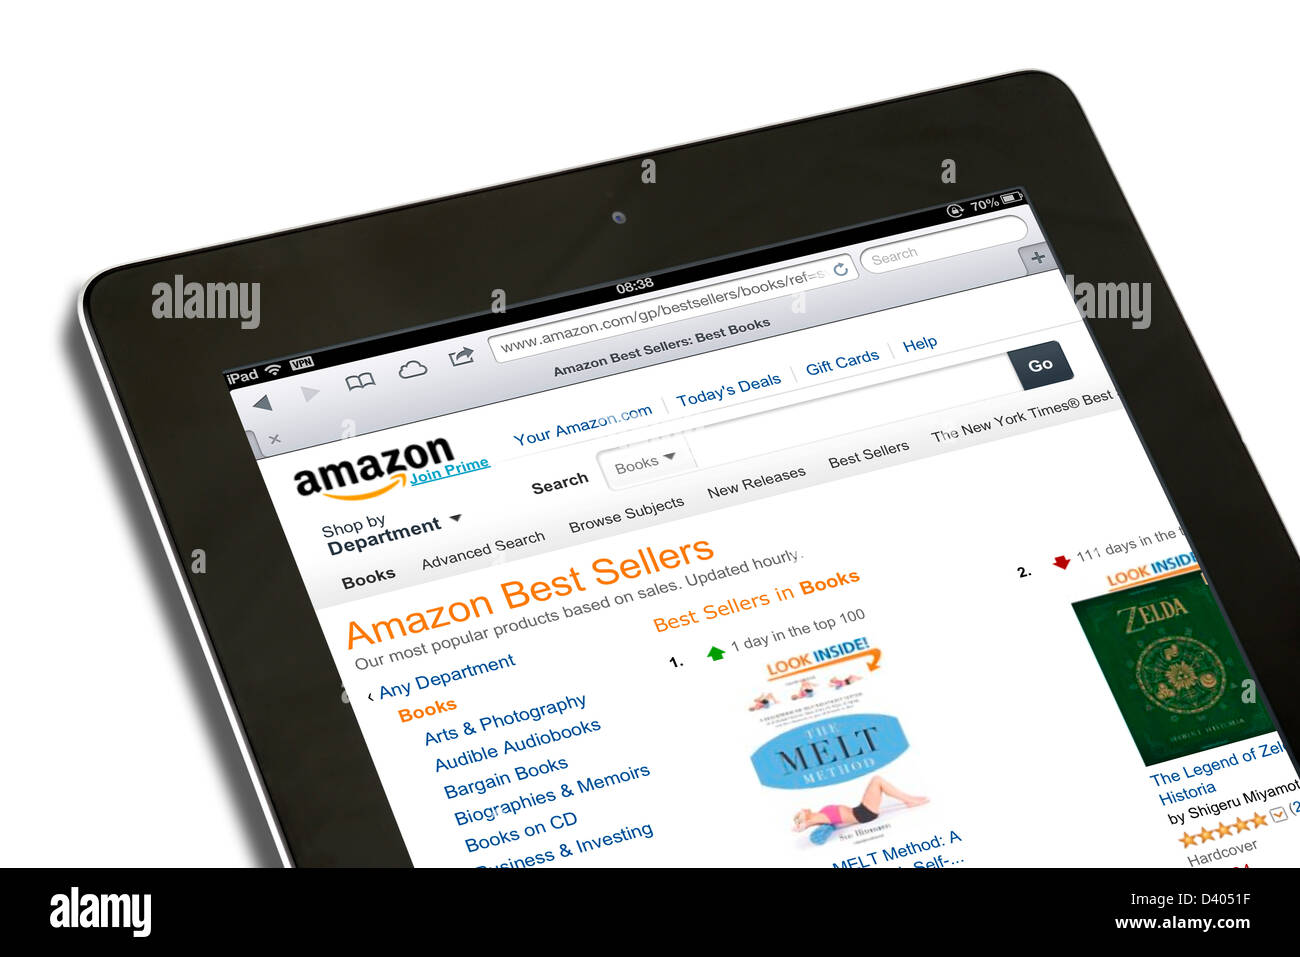 Amazon Audible On Ipad Shopping For Books On The Amazon Usa Website On A 4th